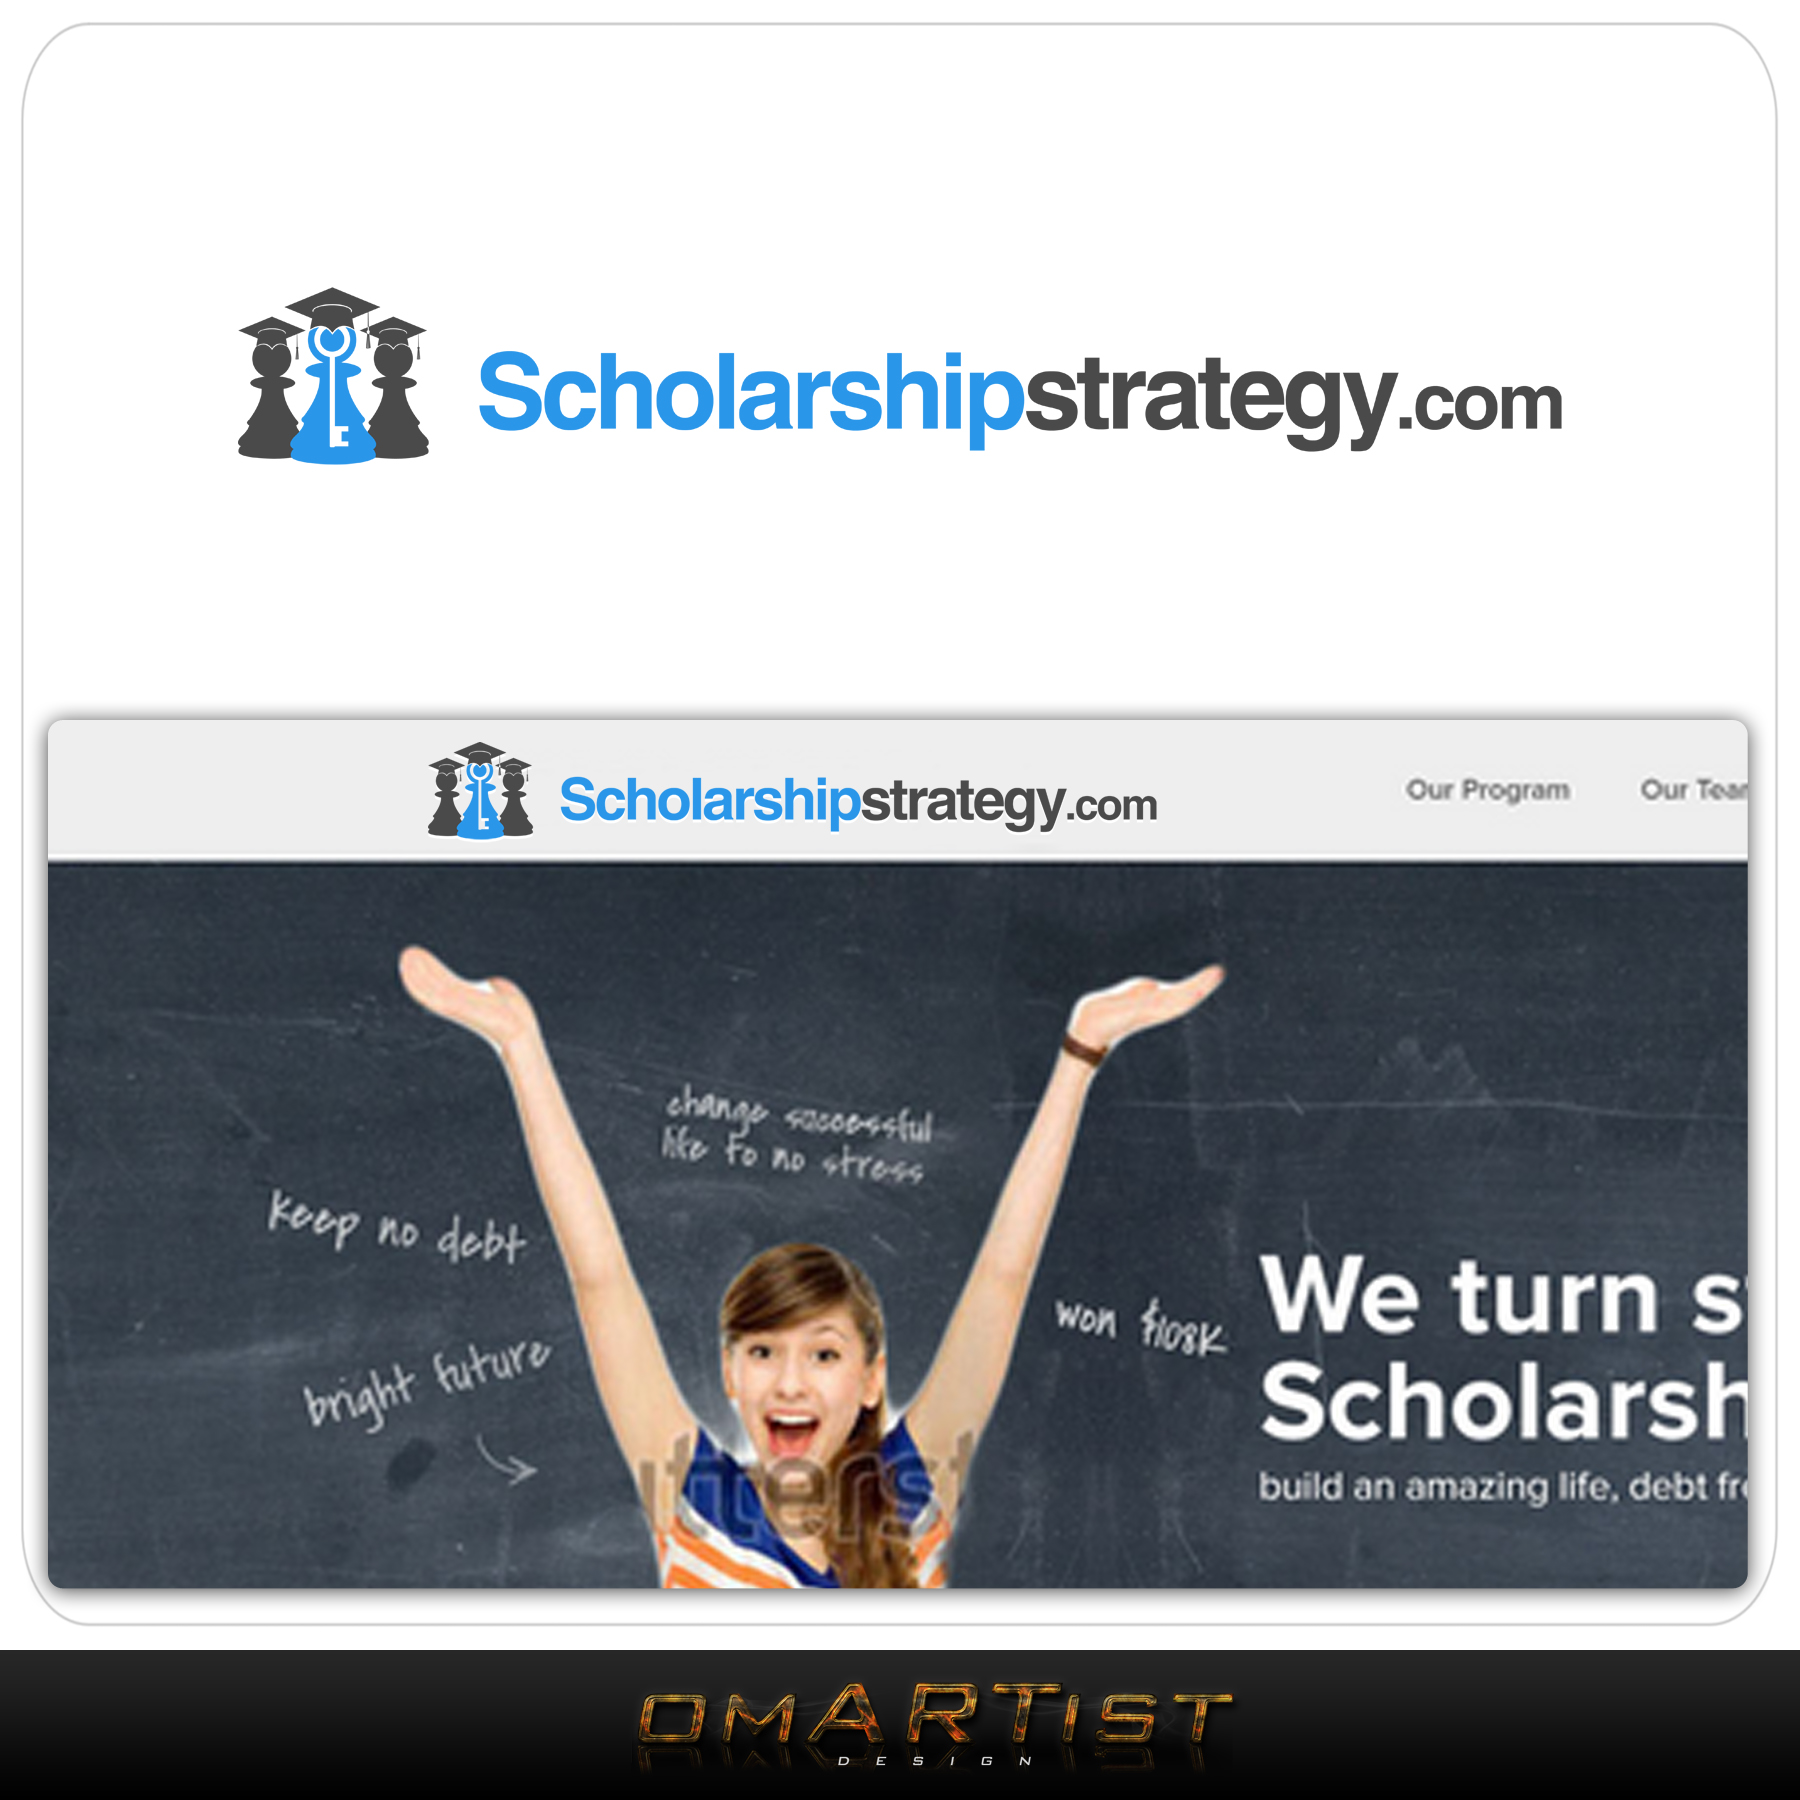 Logo Design by omARTist - Entry No. 189 in the Logo Design Contest Captivating Logo Design for Scholarshipstrategy.com.